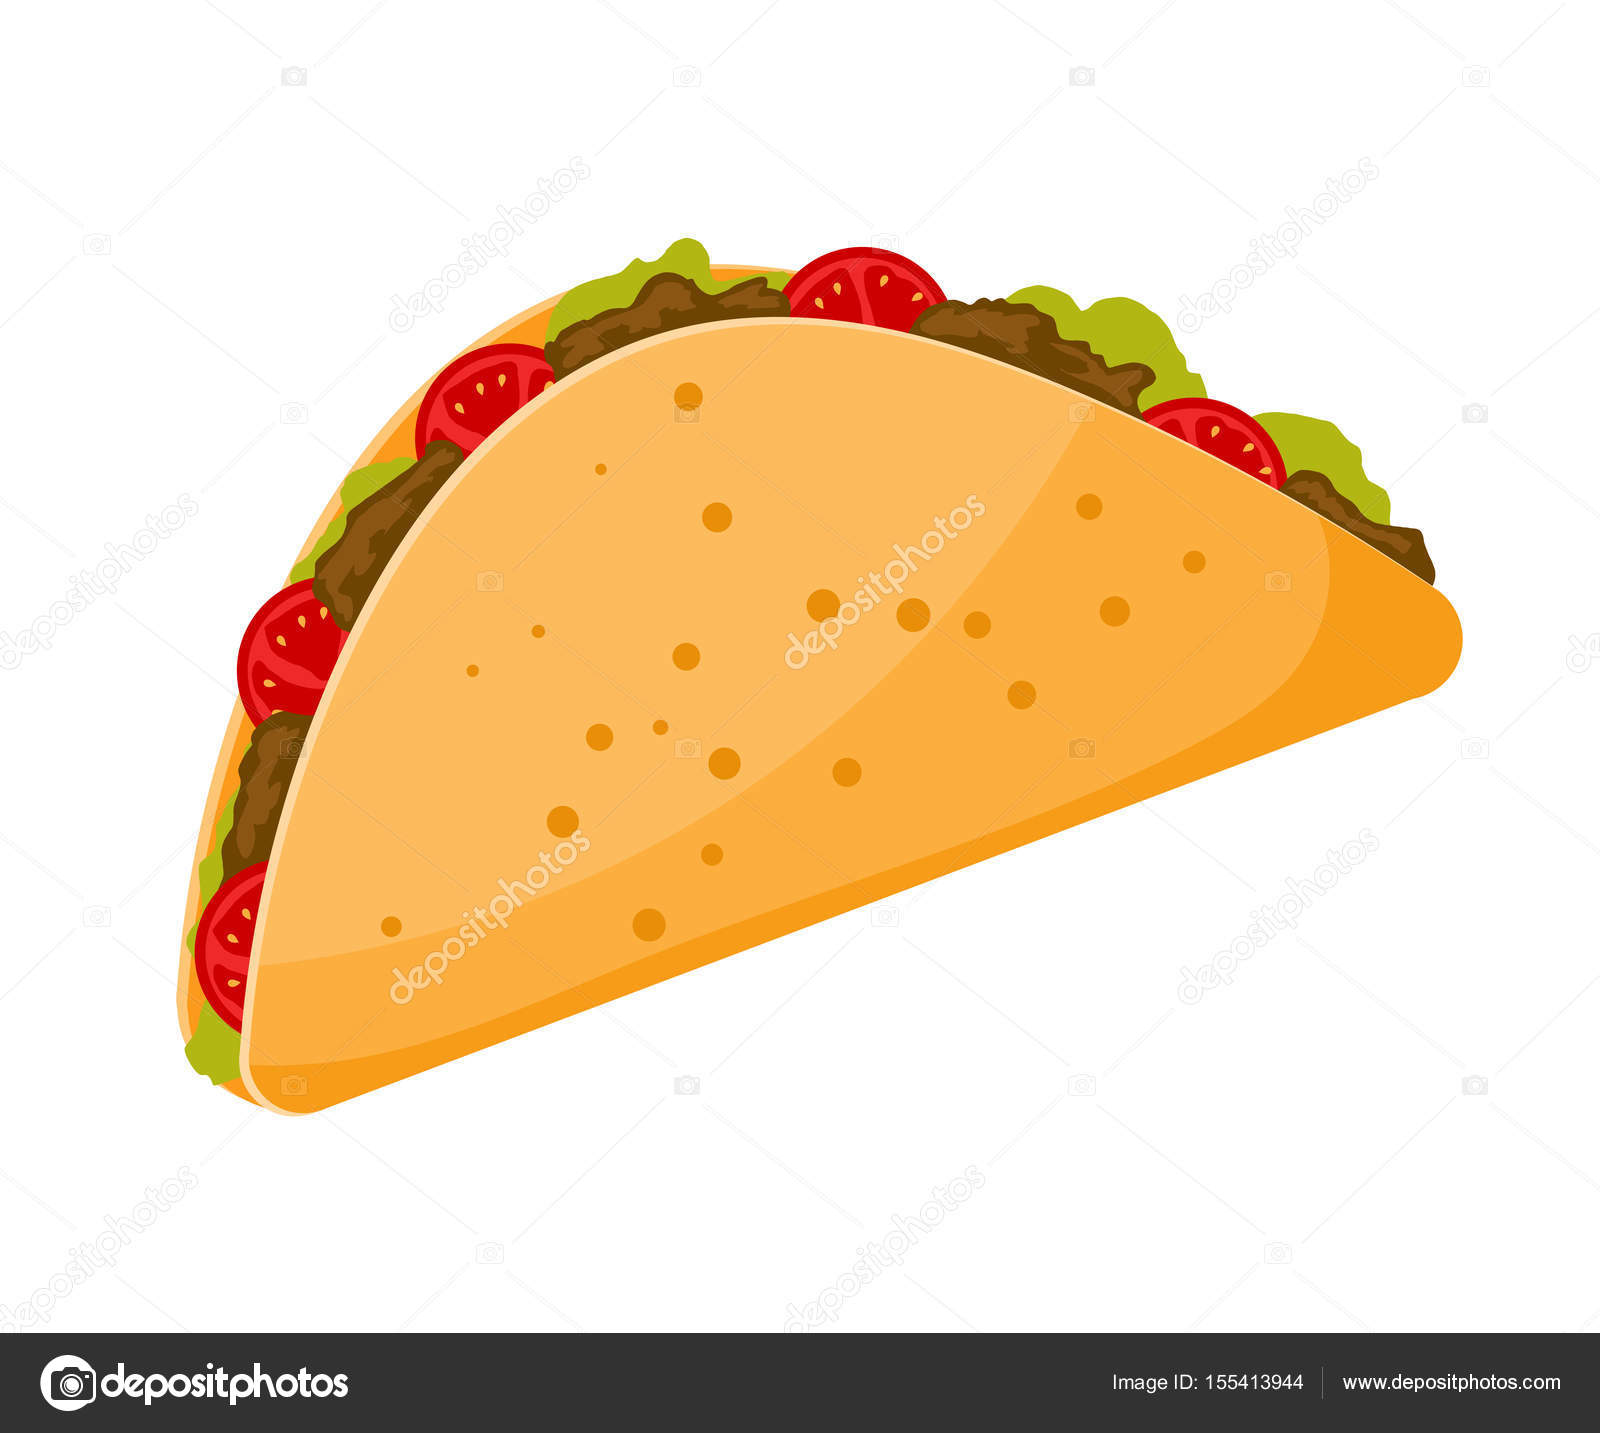 1600x1433 Traditional Mexican Food Is Taco. Cartoon Image Of A Taco On A W